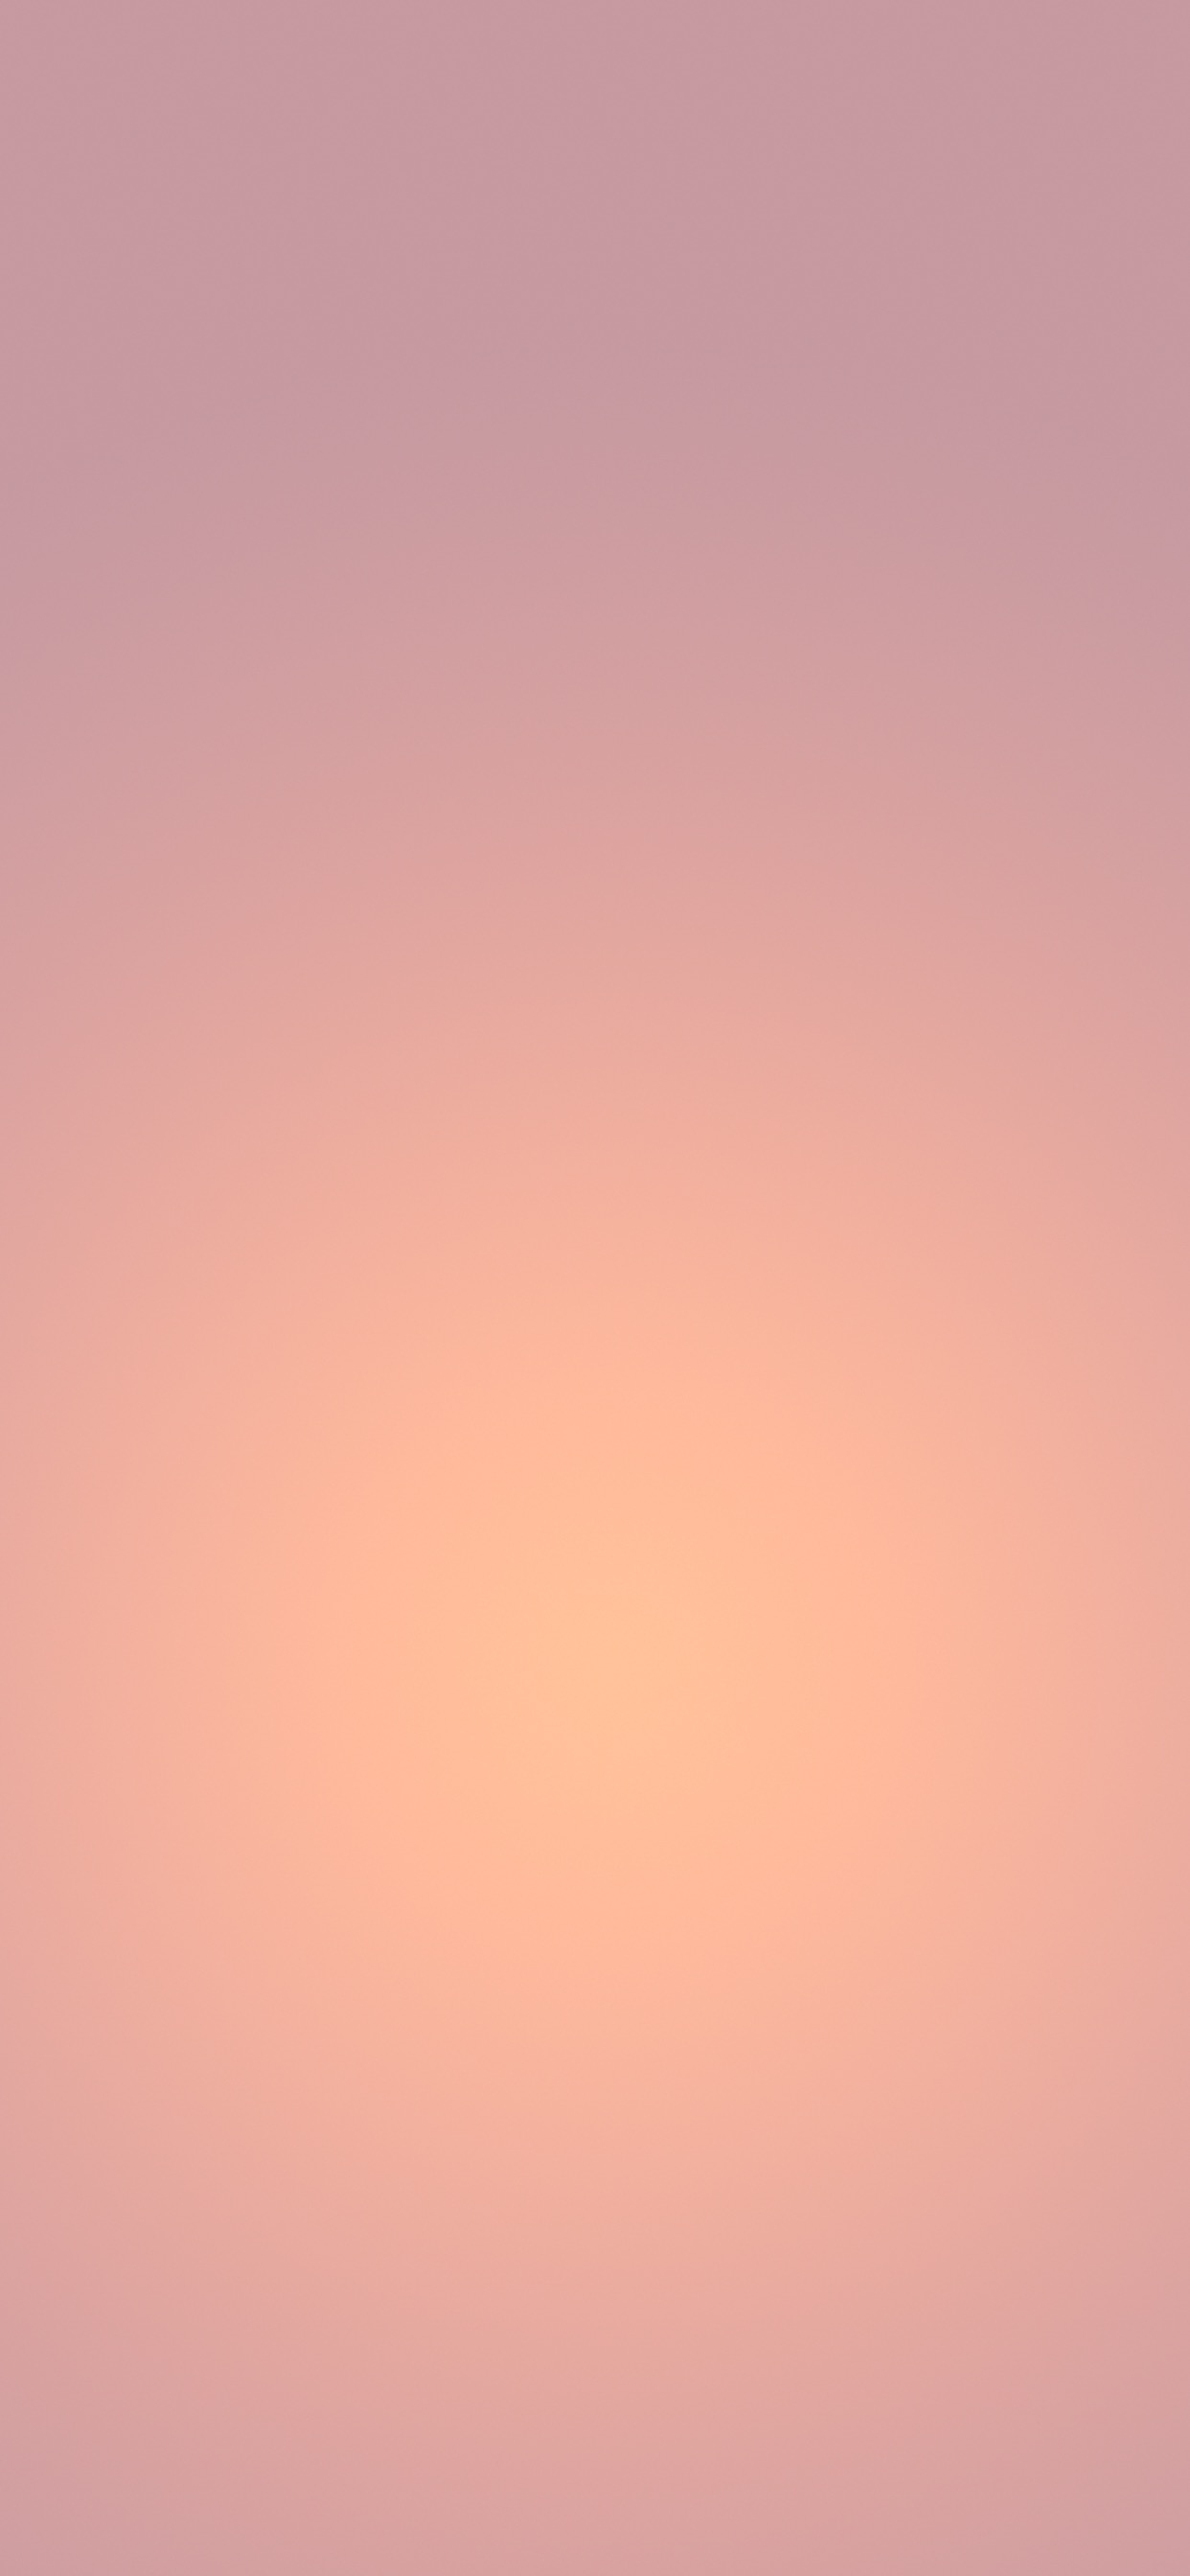 Simple Gradient Wallpapers For Iphone In 2020 Rose Gold Wallpaper Plain Wallpaper Iphone Gold Wallpaper